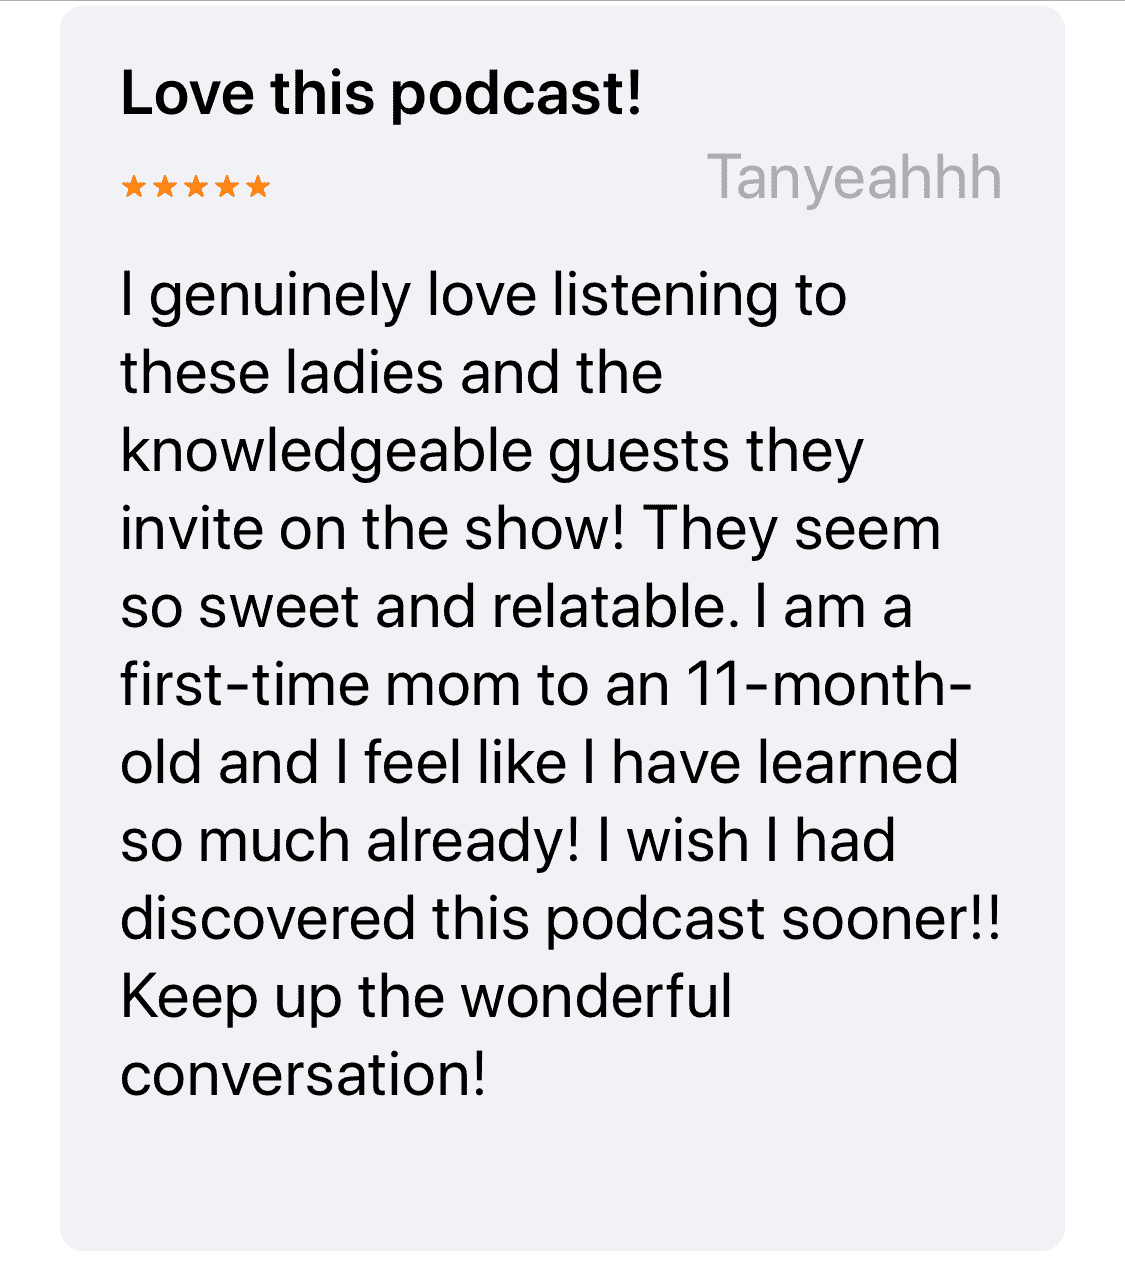 Love-this-podcast!